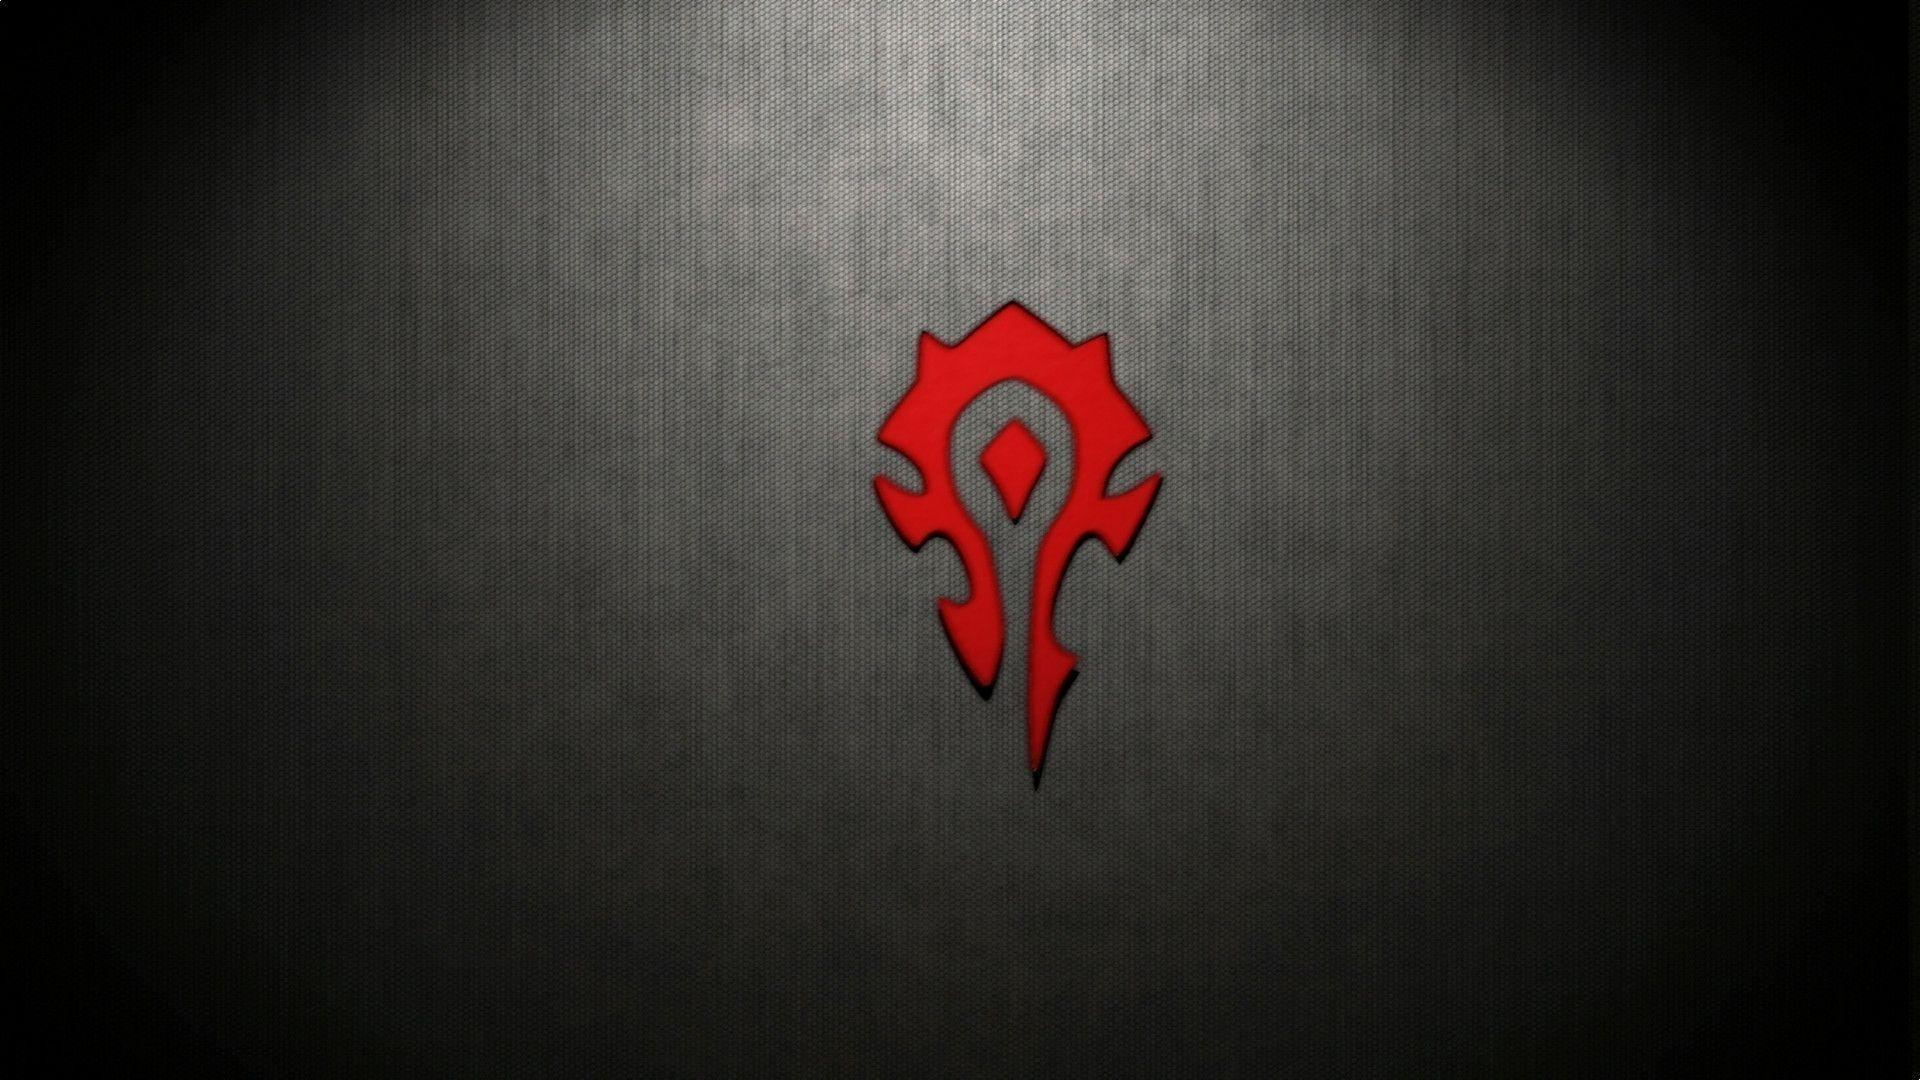 Download Horde Logo Wallpaper, HD Backgrounds Download.